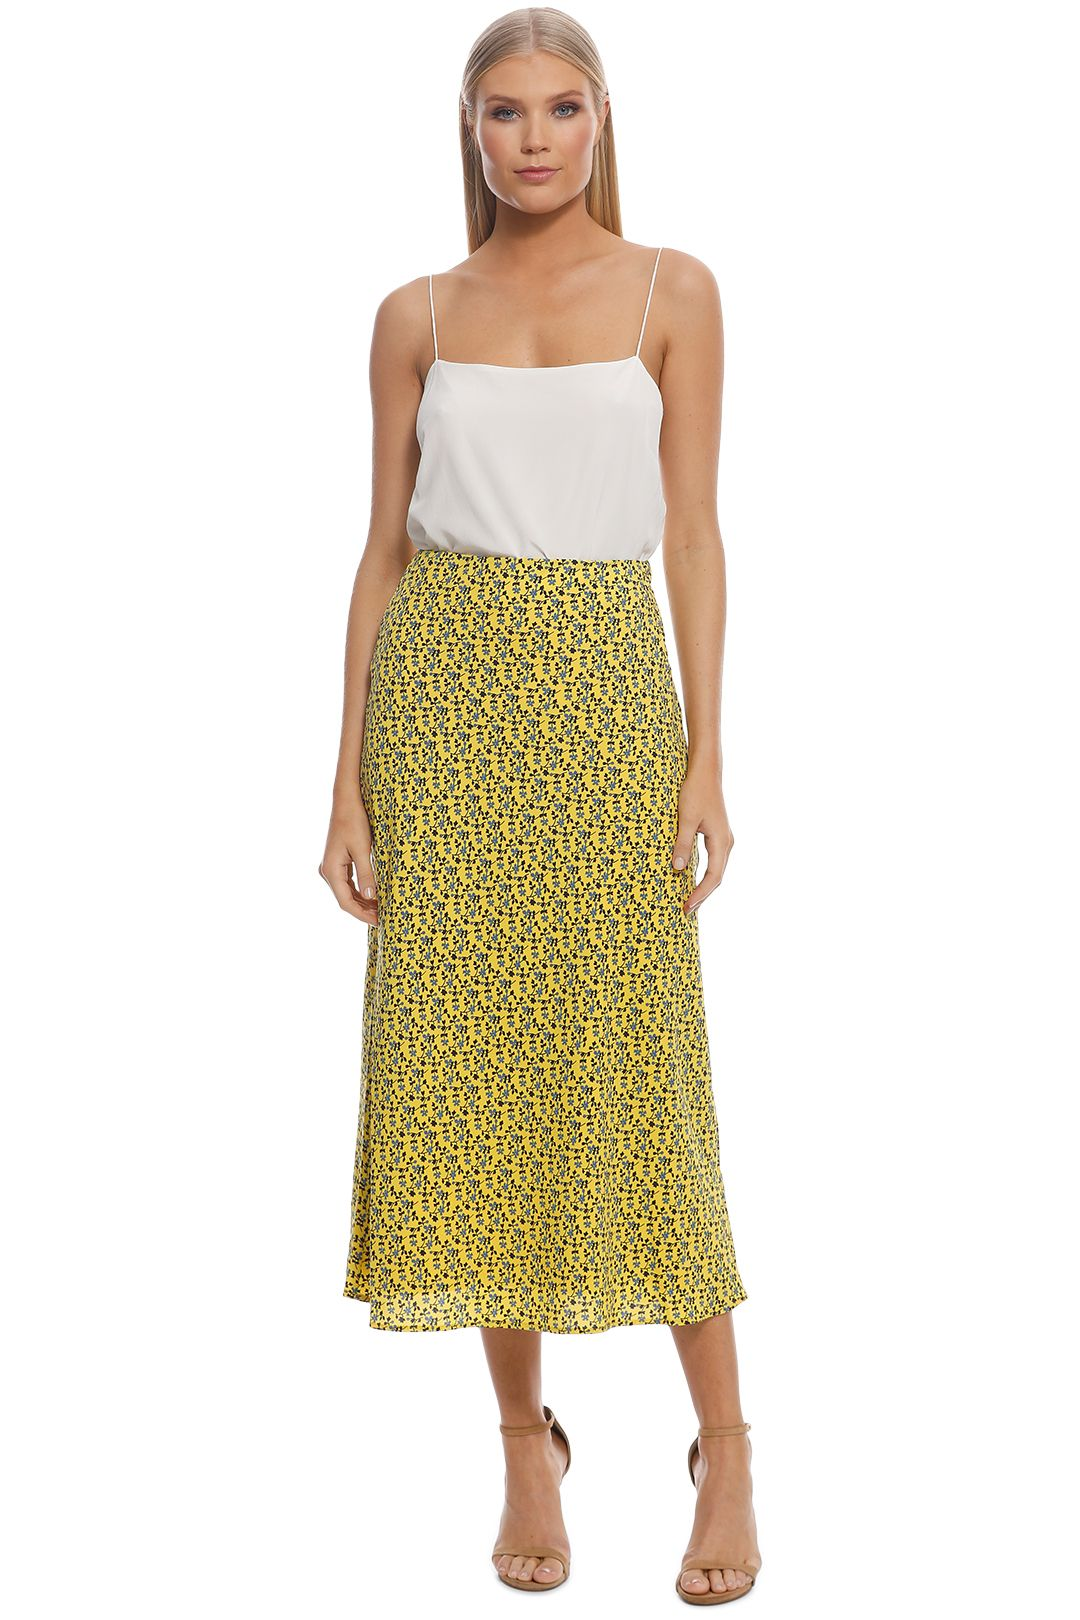 CMEO Collective - Sanguine Skirt - Yellow Floral - Front